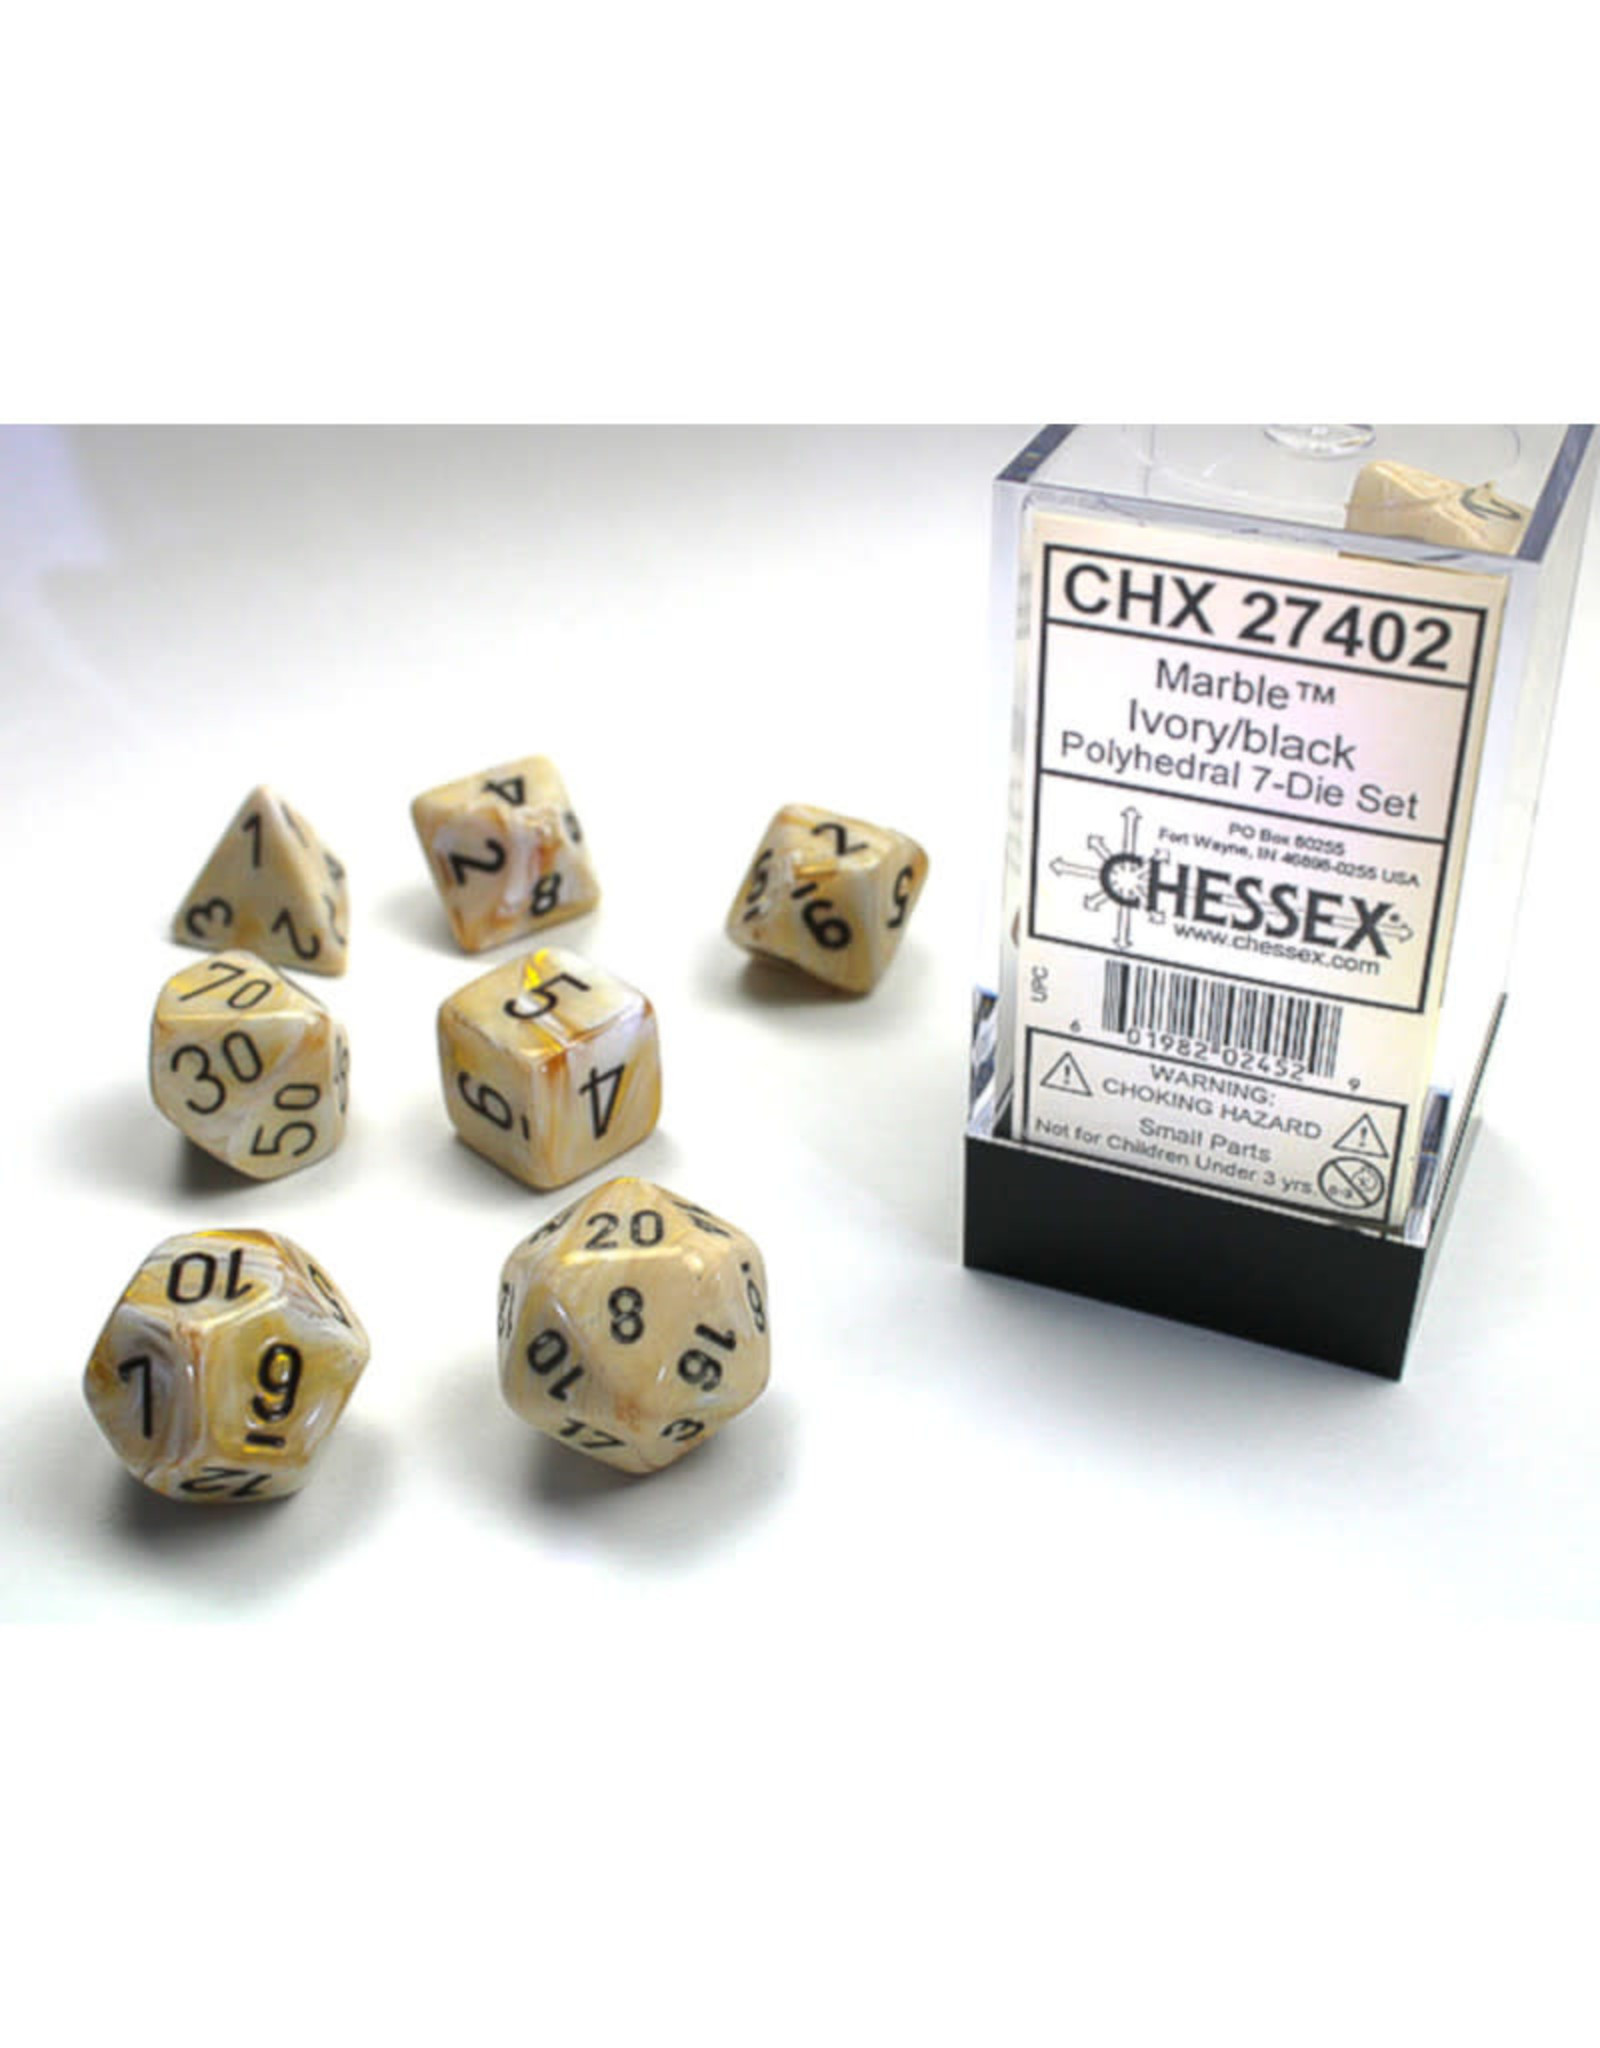 Chessex Polyhedral Dice Set: Marble Ivory/Black (7)